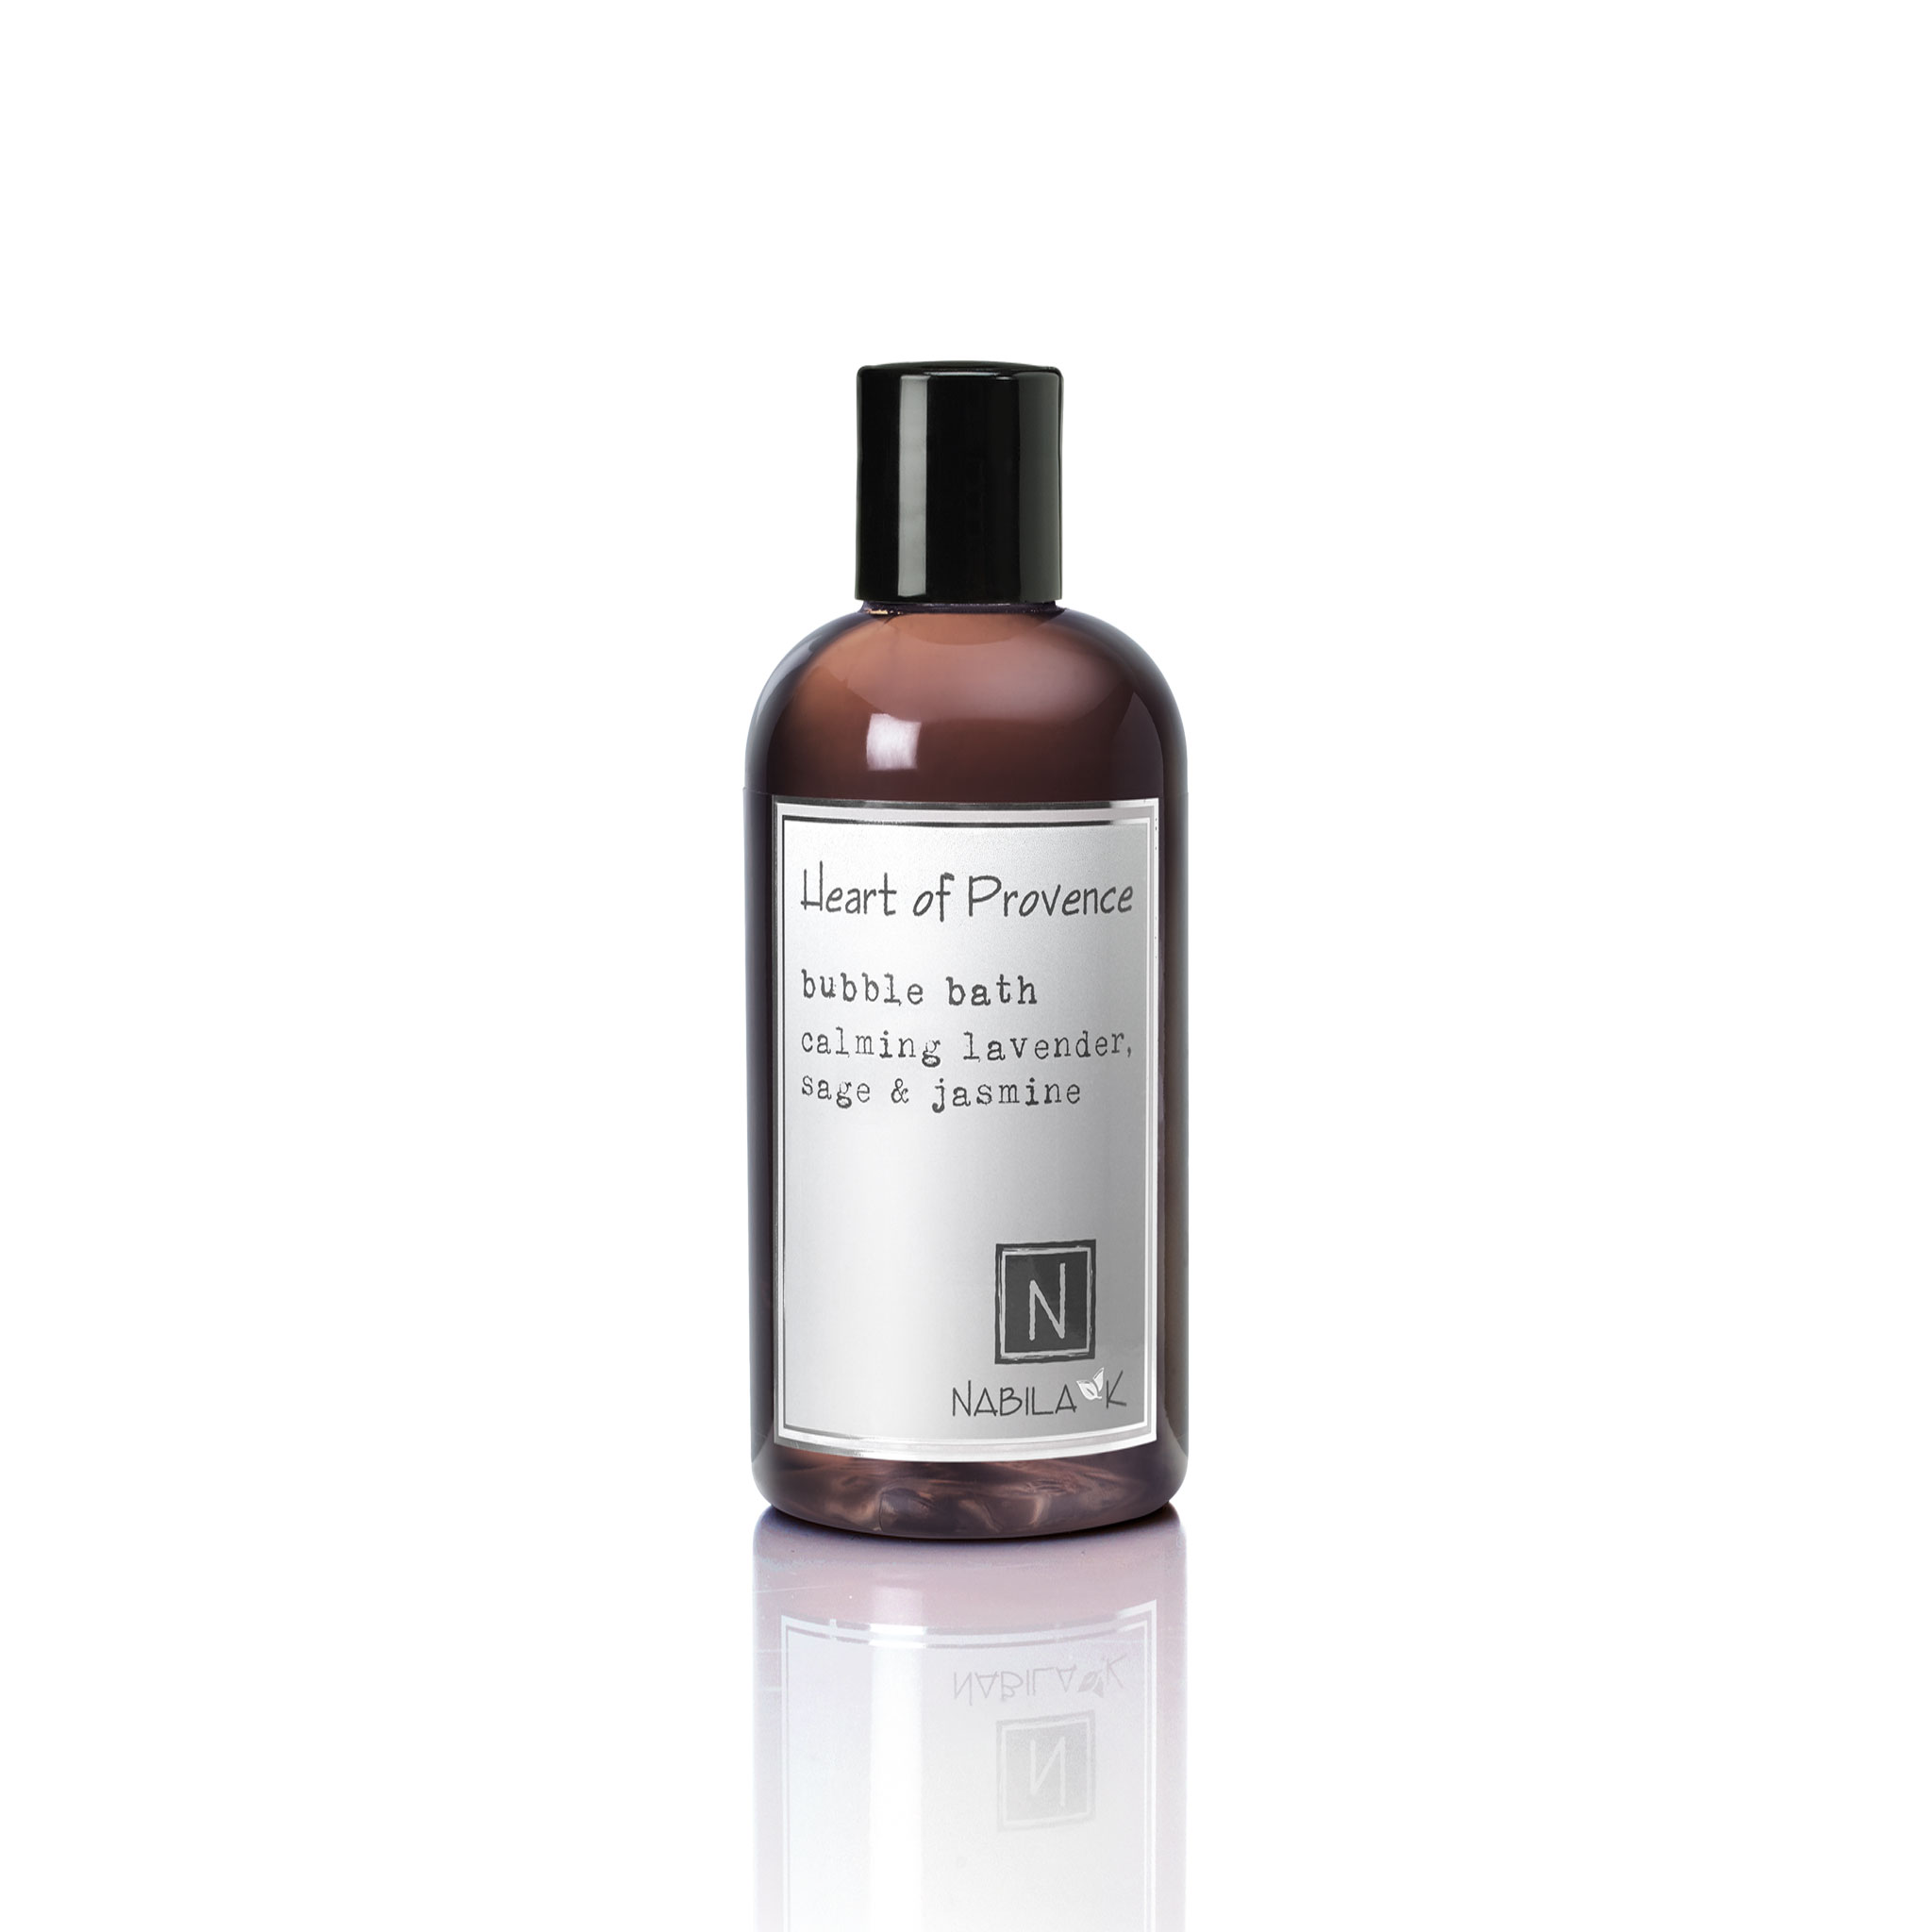 1 8oz bottle of heart of provence bubble bath calming lavender sage and jasmine